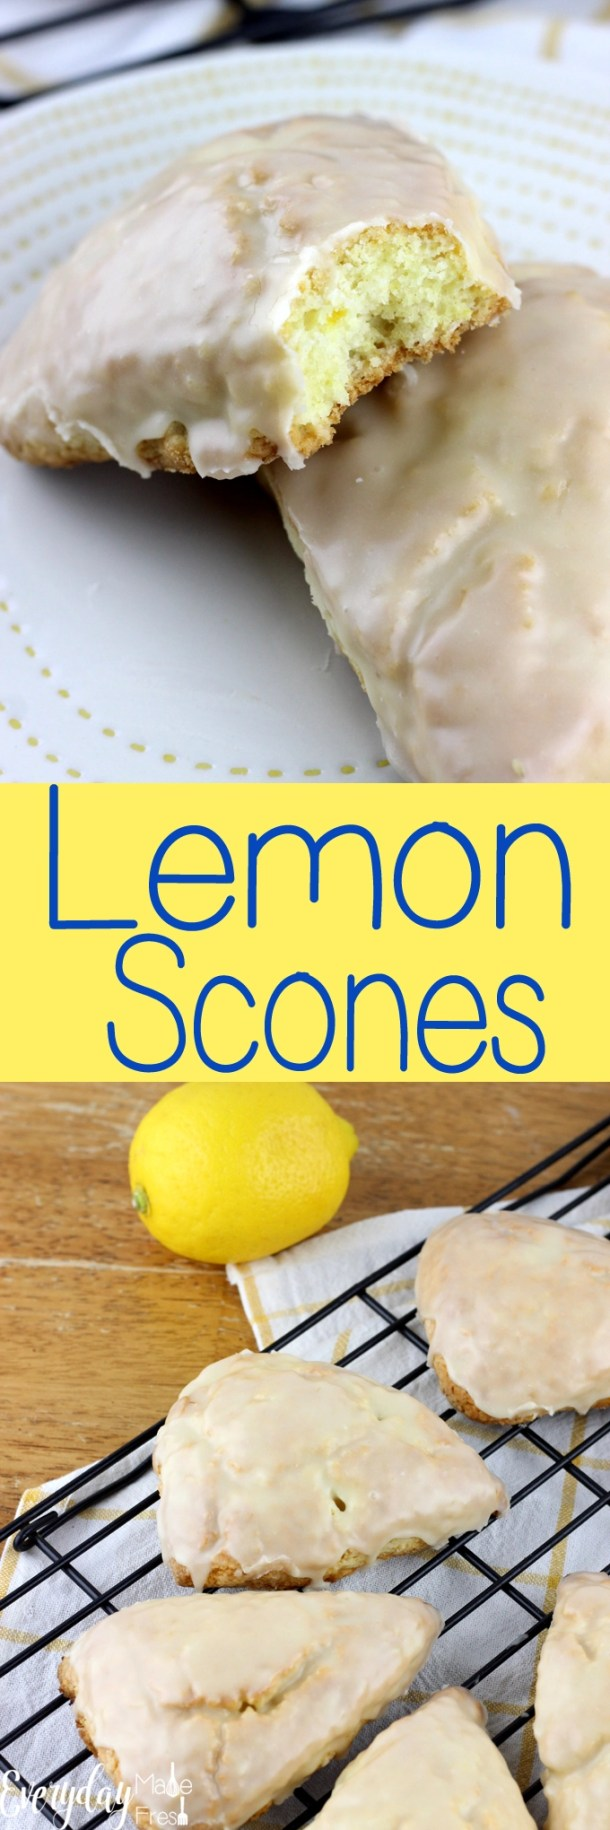 Lemon Scones are light and fluffy, bursting with lemon flavor! They are dipped in a lemon glaze that make these the perfect breakfast or snack. | EverydayMadeFresh.com